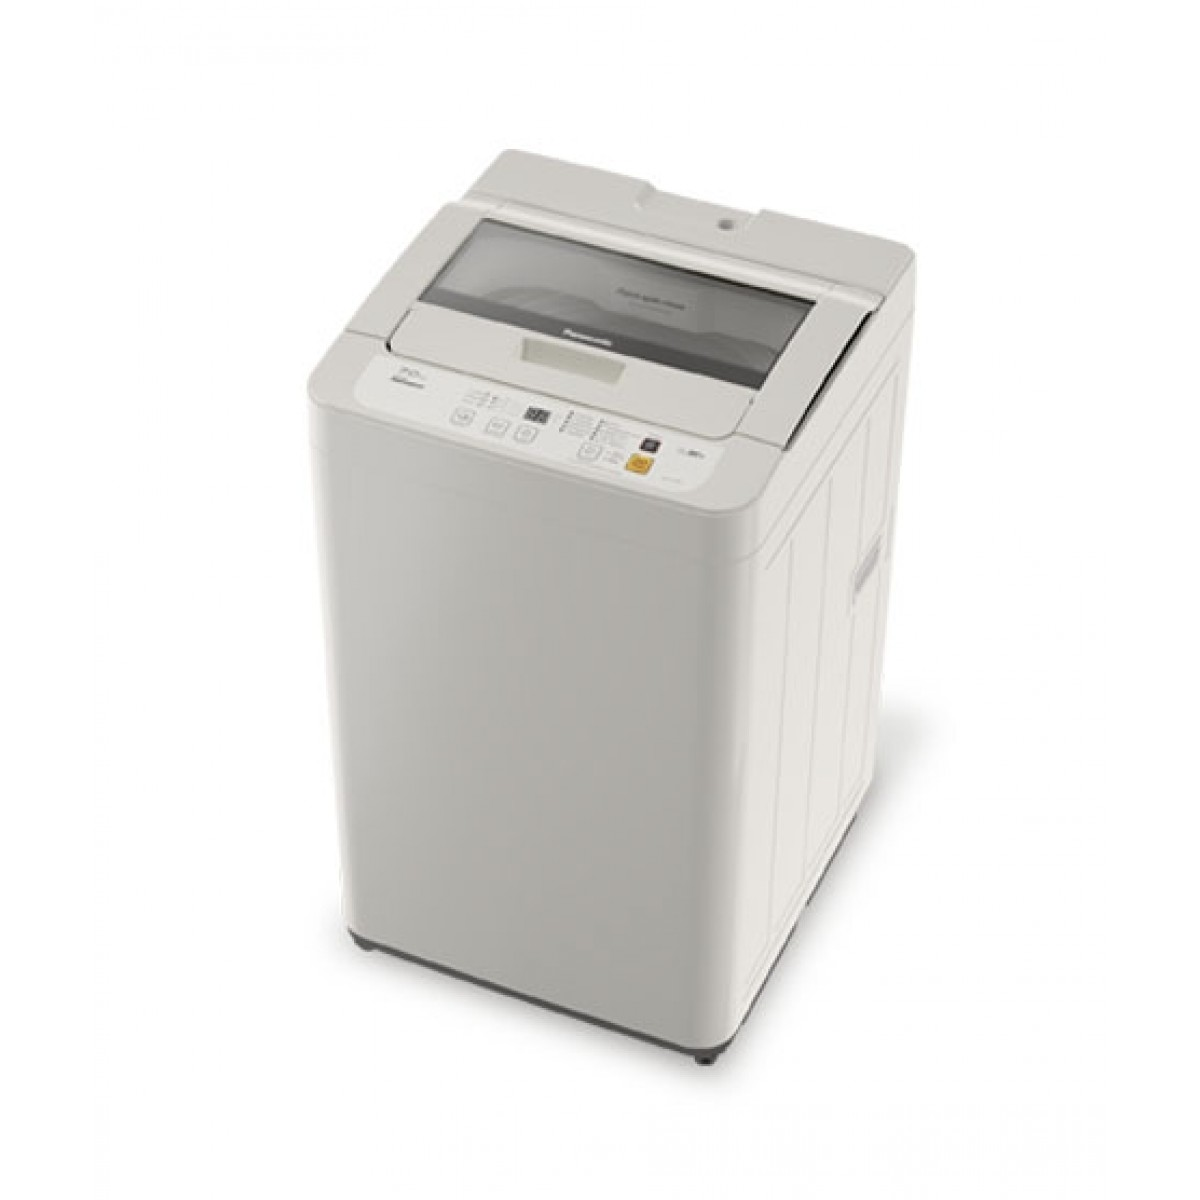 Panasonic Top Load Washing Machine 7KG Price in Pakistan ...